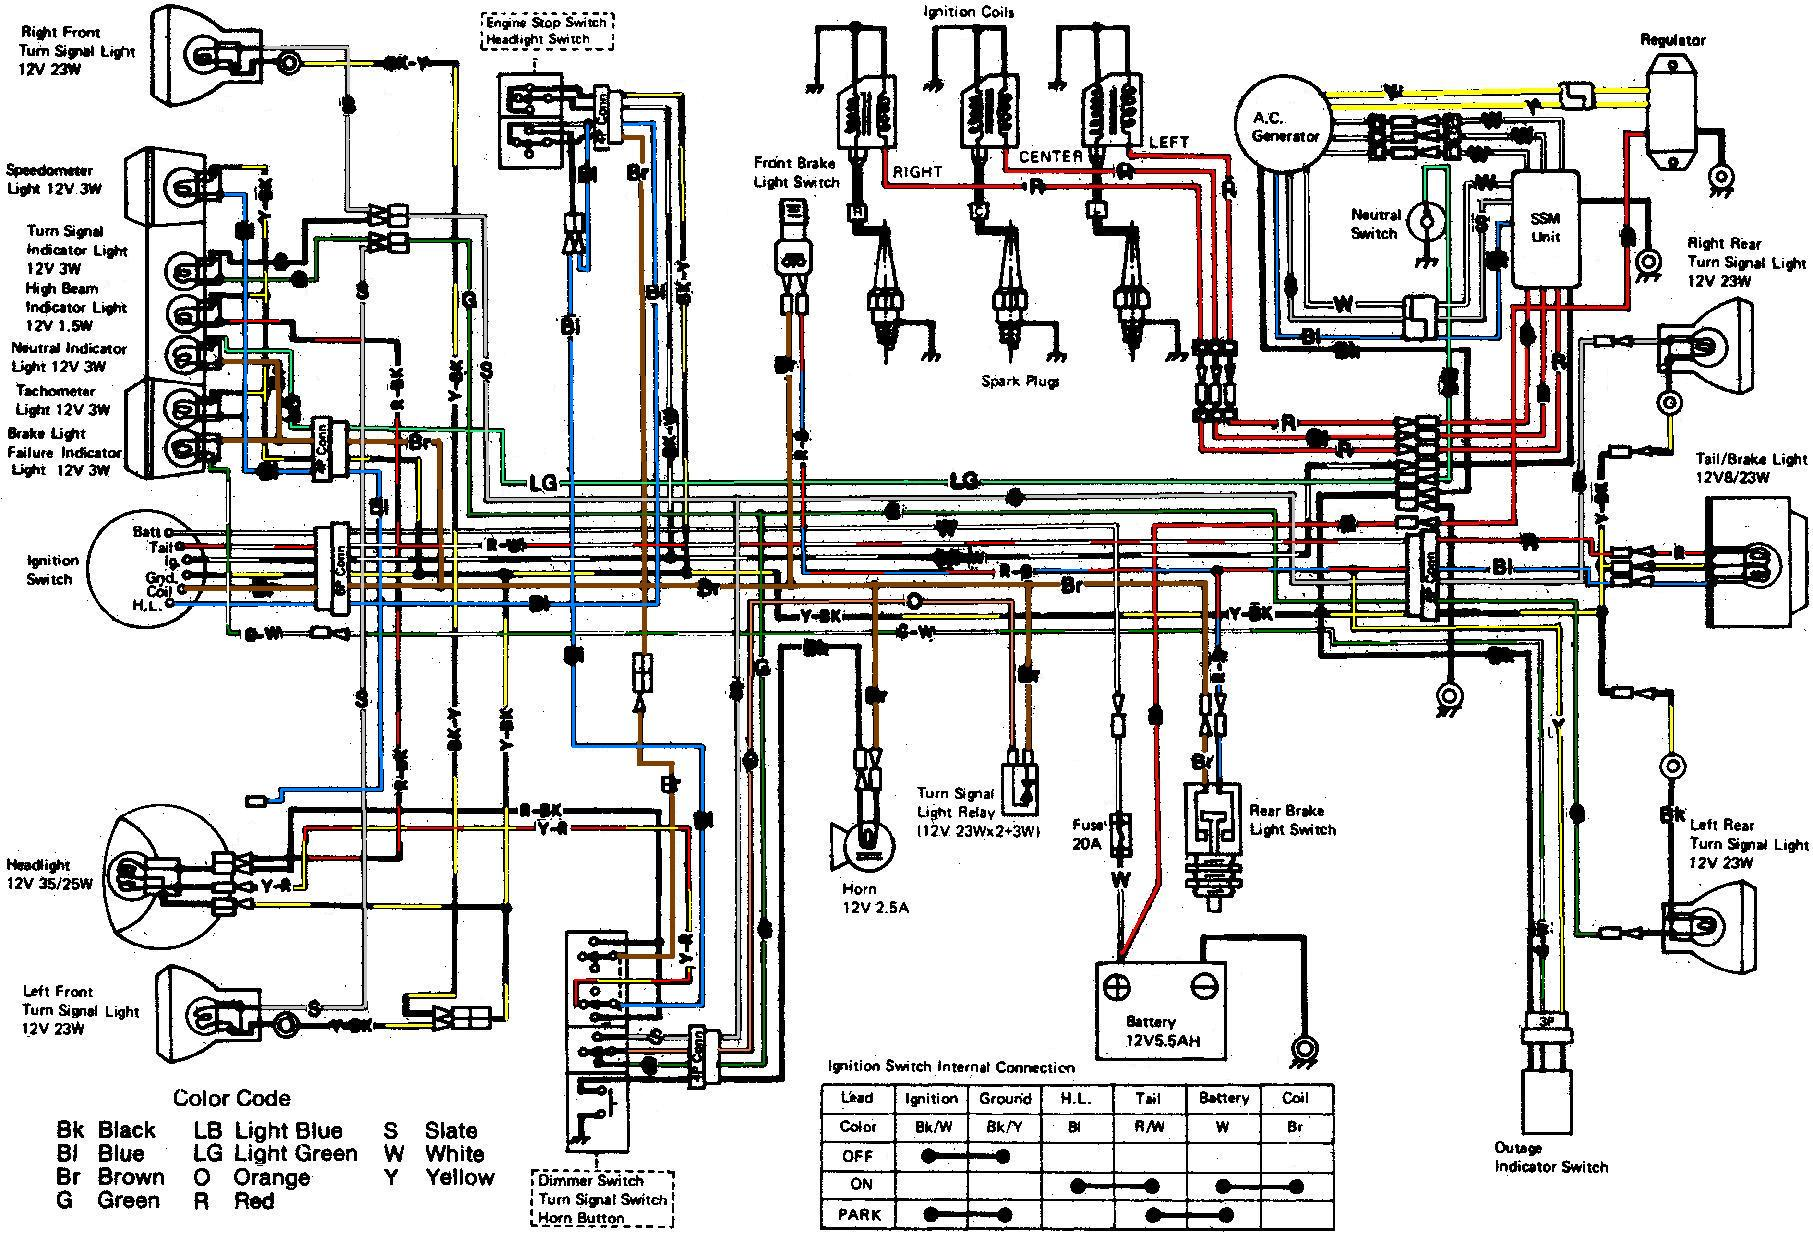 hight resolution of suzuki gt750 wiring diagram data wiring diagramgt750 wiring diagram wiring diagram todays suzuki gsx600f wiring diagram